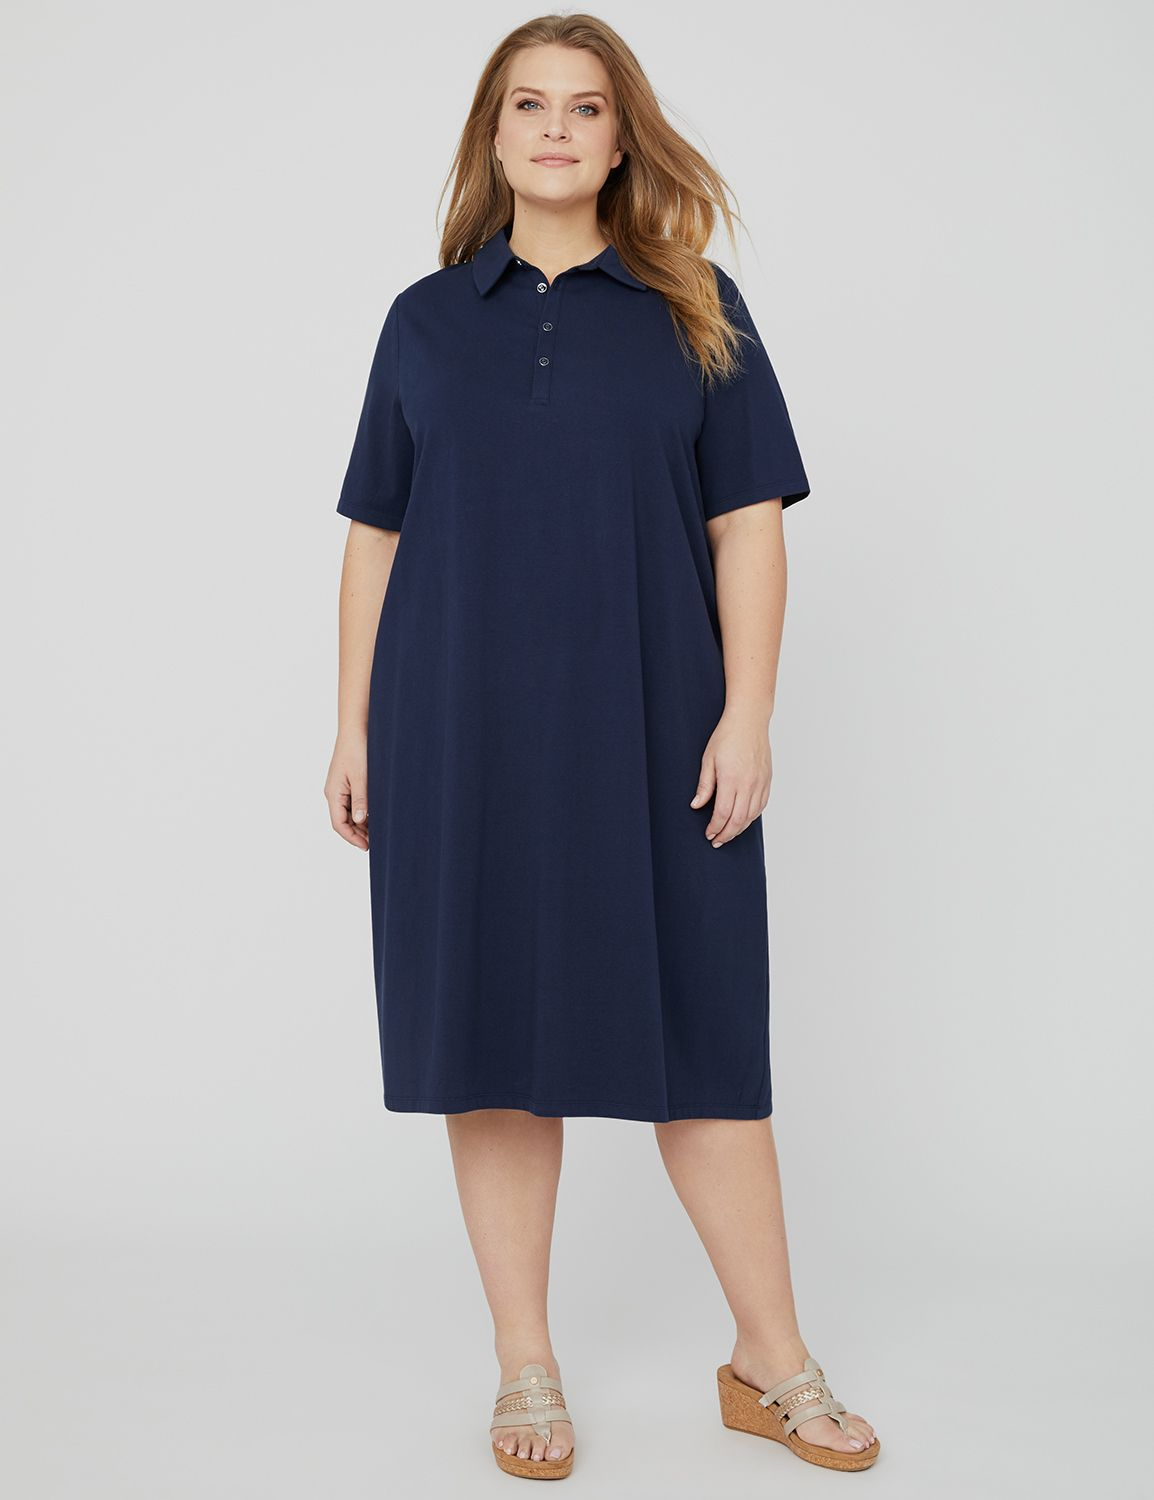 Suprema Polo Dress 1090899 Suprema Polo Dress MP-300105856